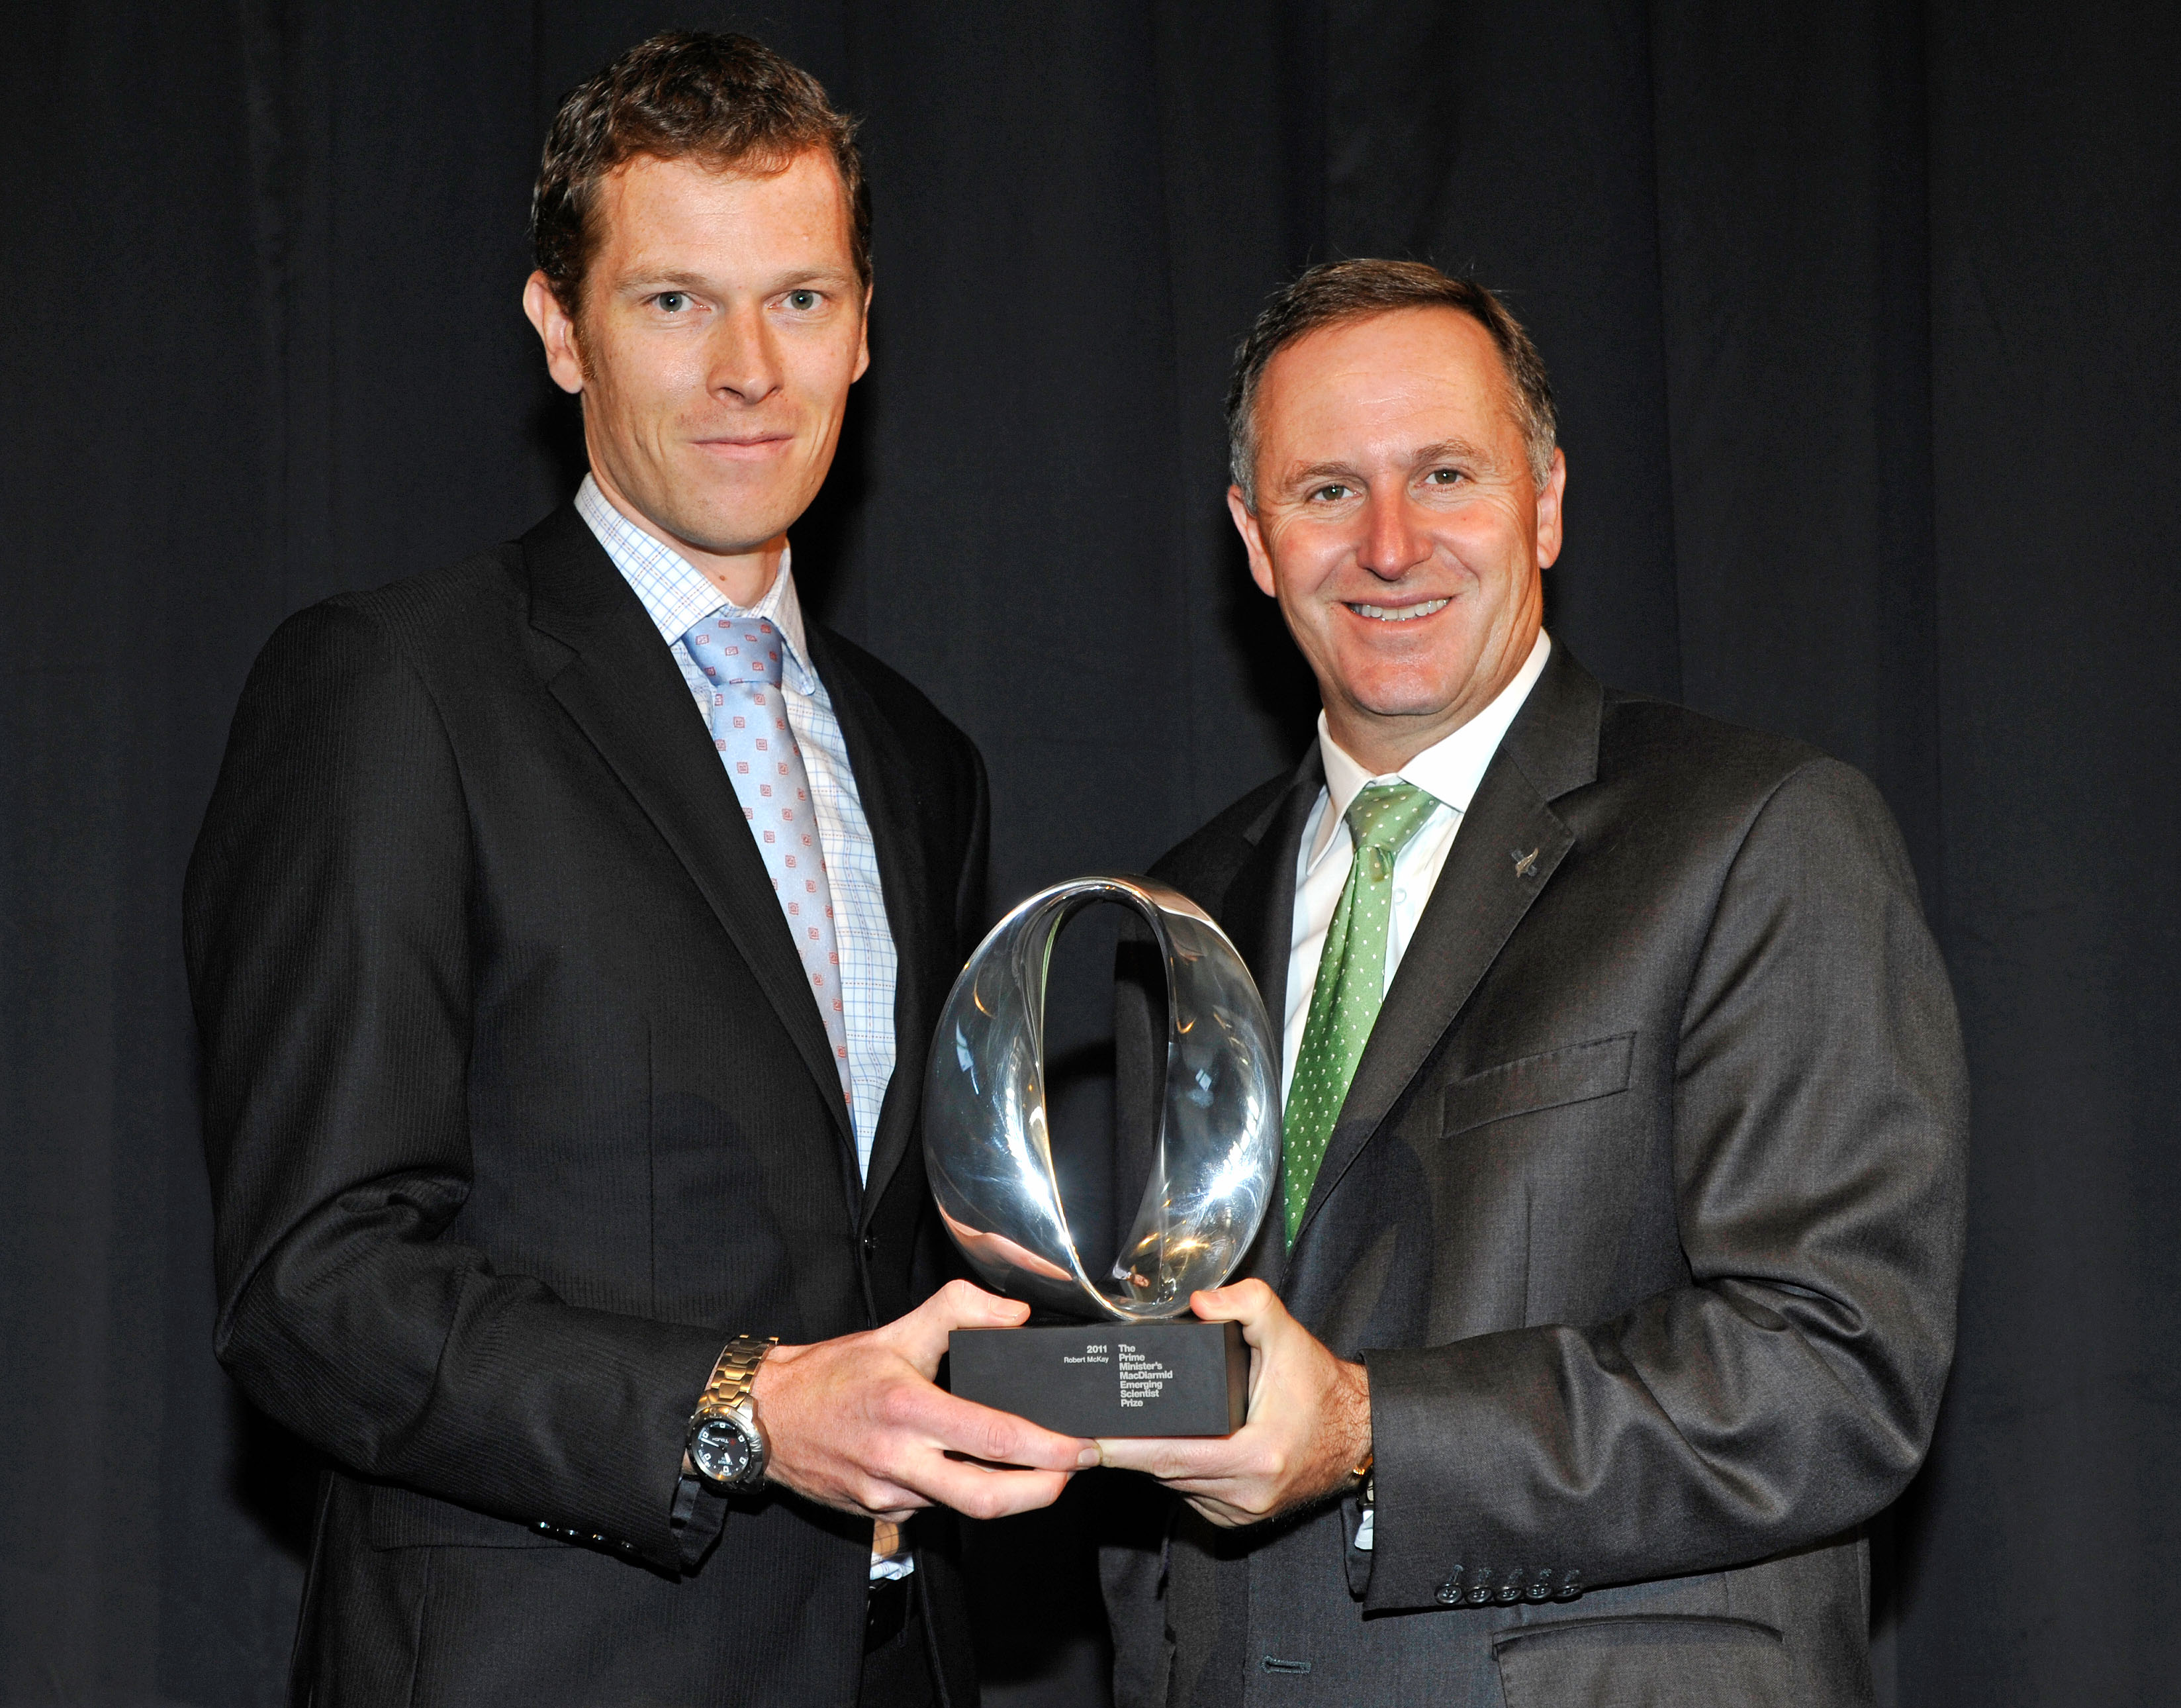 Image: The Prime Minister's MacDiarmid Emerging Scientist Prize 2011